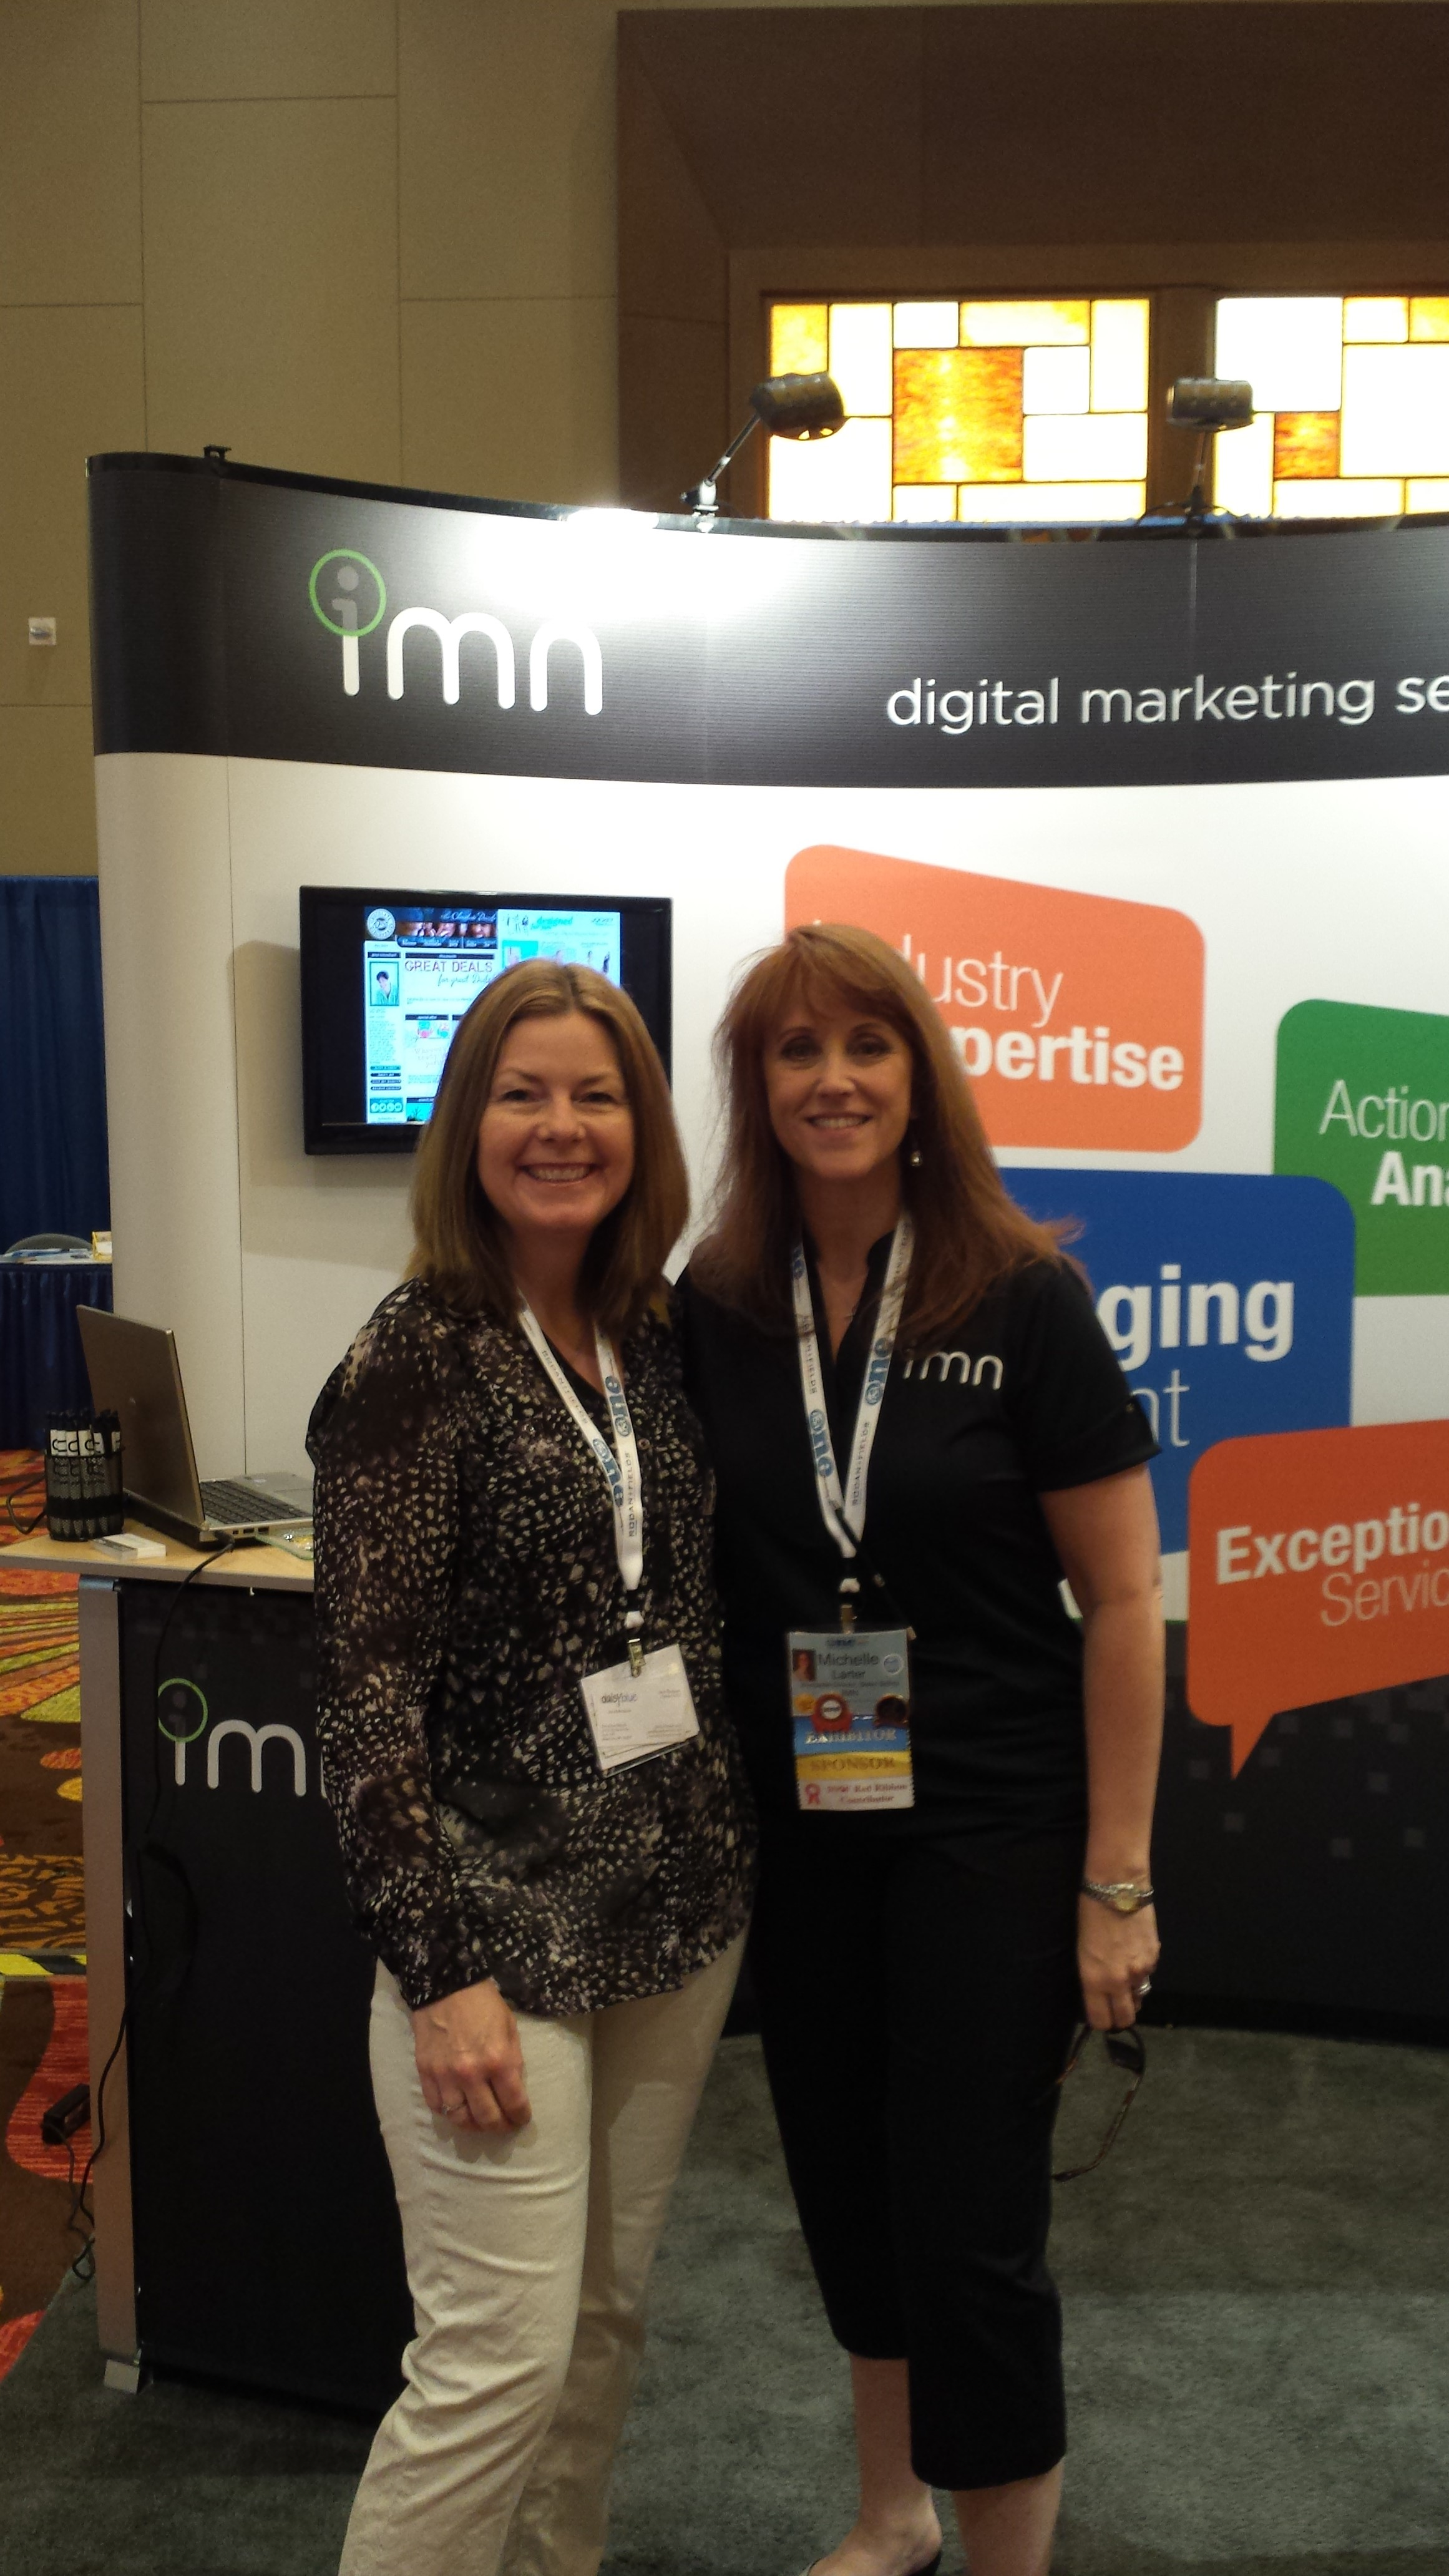 Connie visits the IMN booth